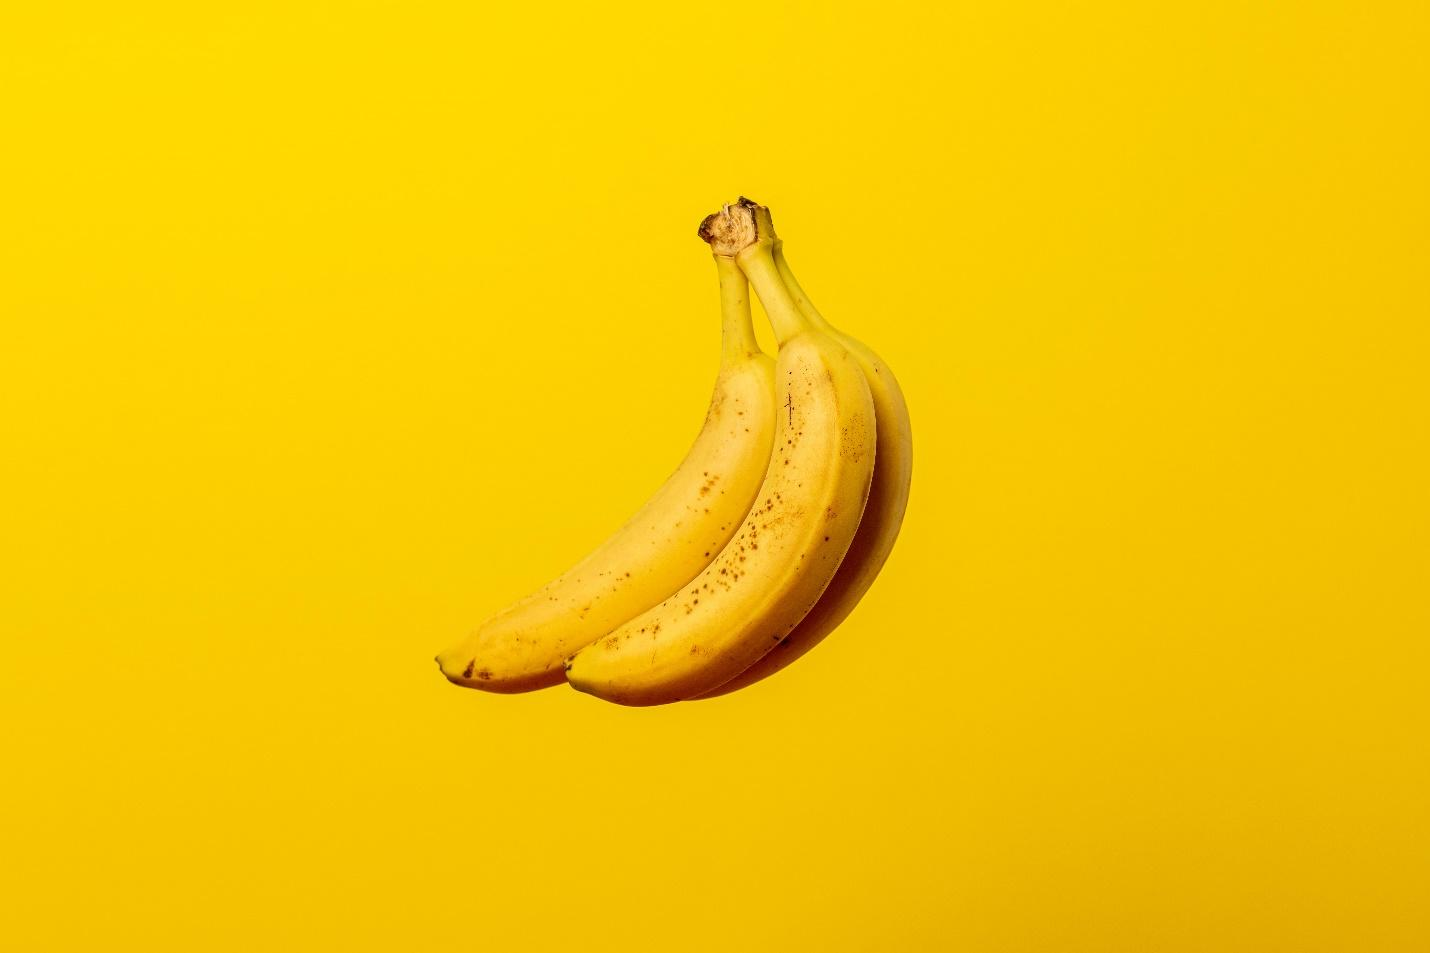 Ripe bananas against a yellow background